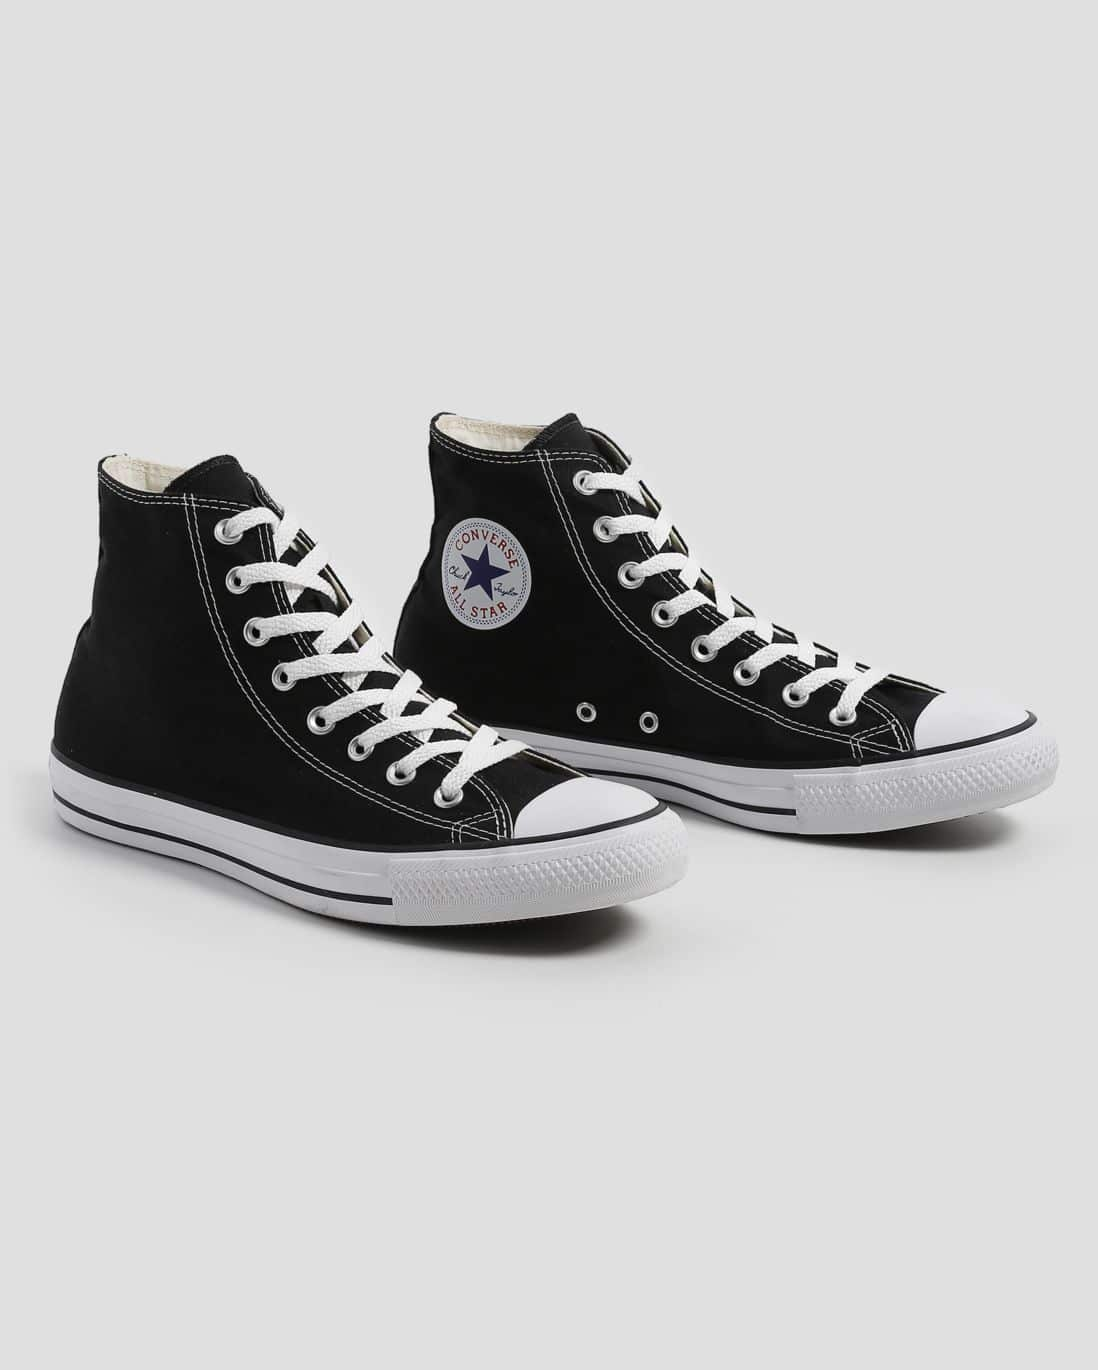 7aaceede52b ... new style tenis all star converse cano alto foto still b248f 3bea5  reduced tênis all star converse chuck taylor ...